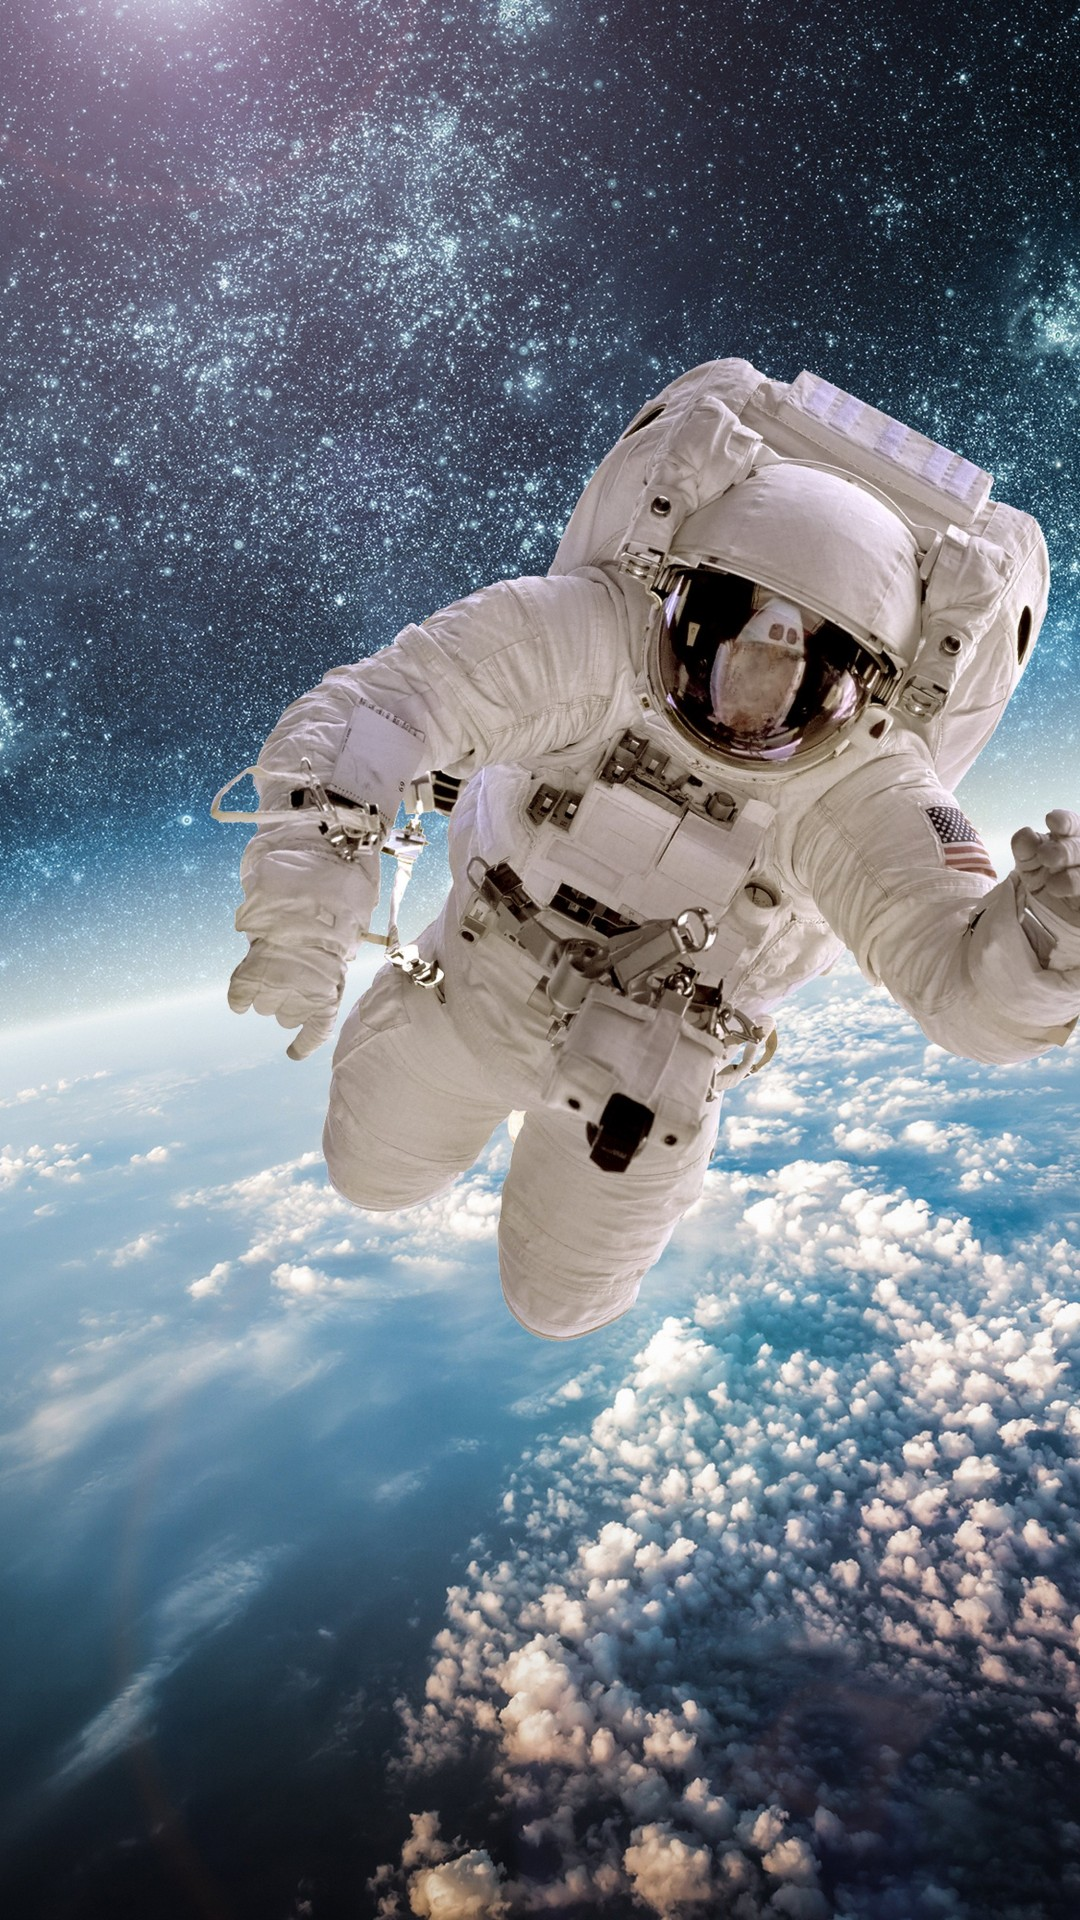 Wallpaper Iphone Funny Wallpaper Astronaut Stars Space Galaxy 5k Space 17776